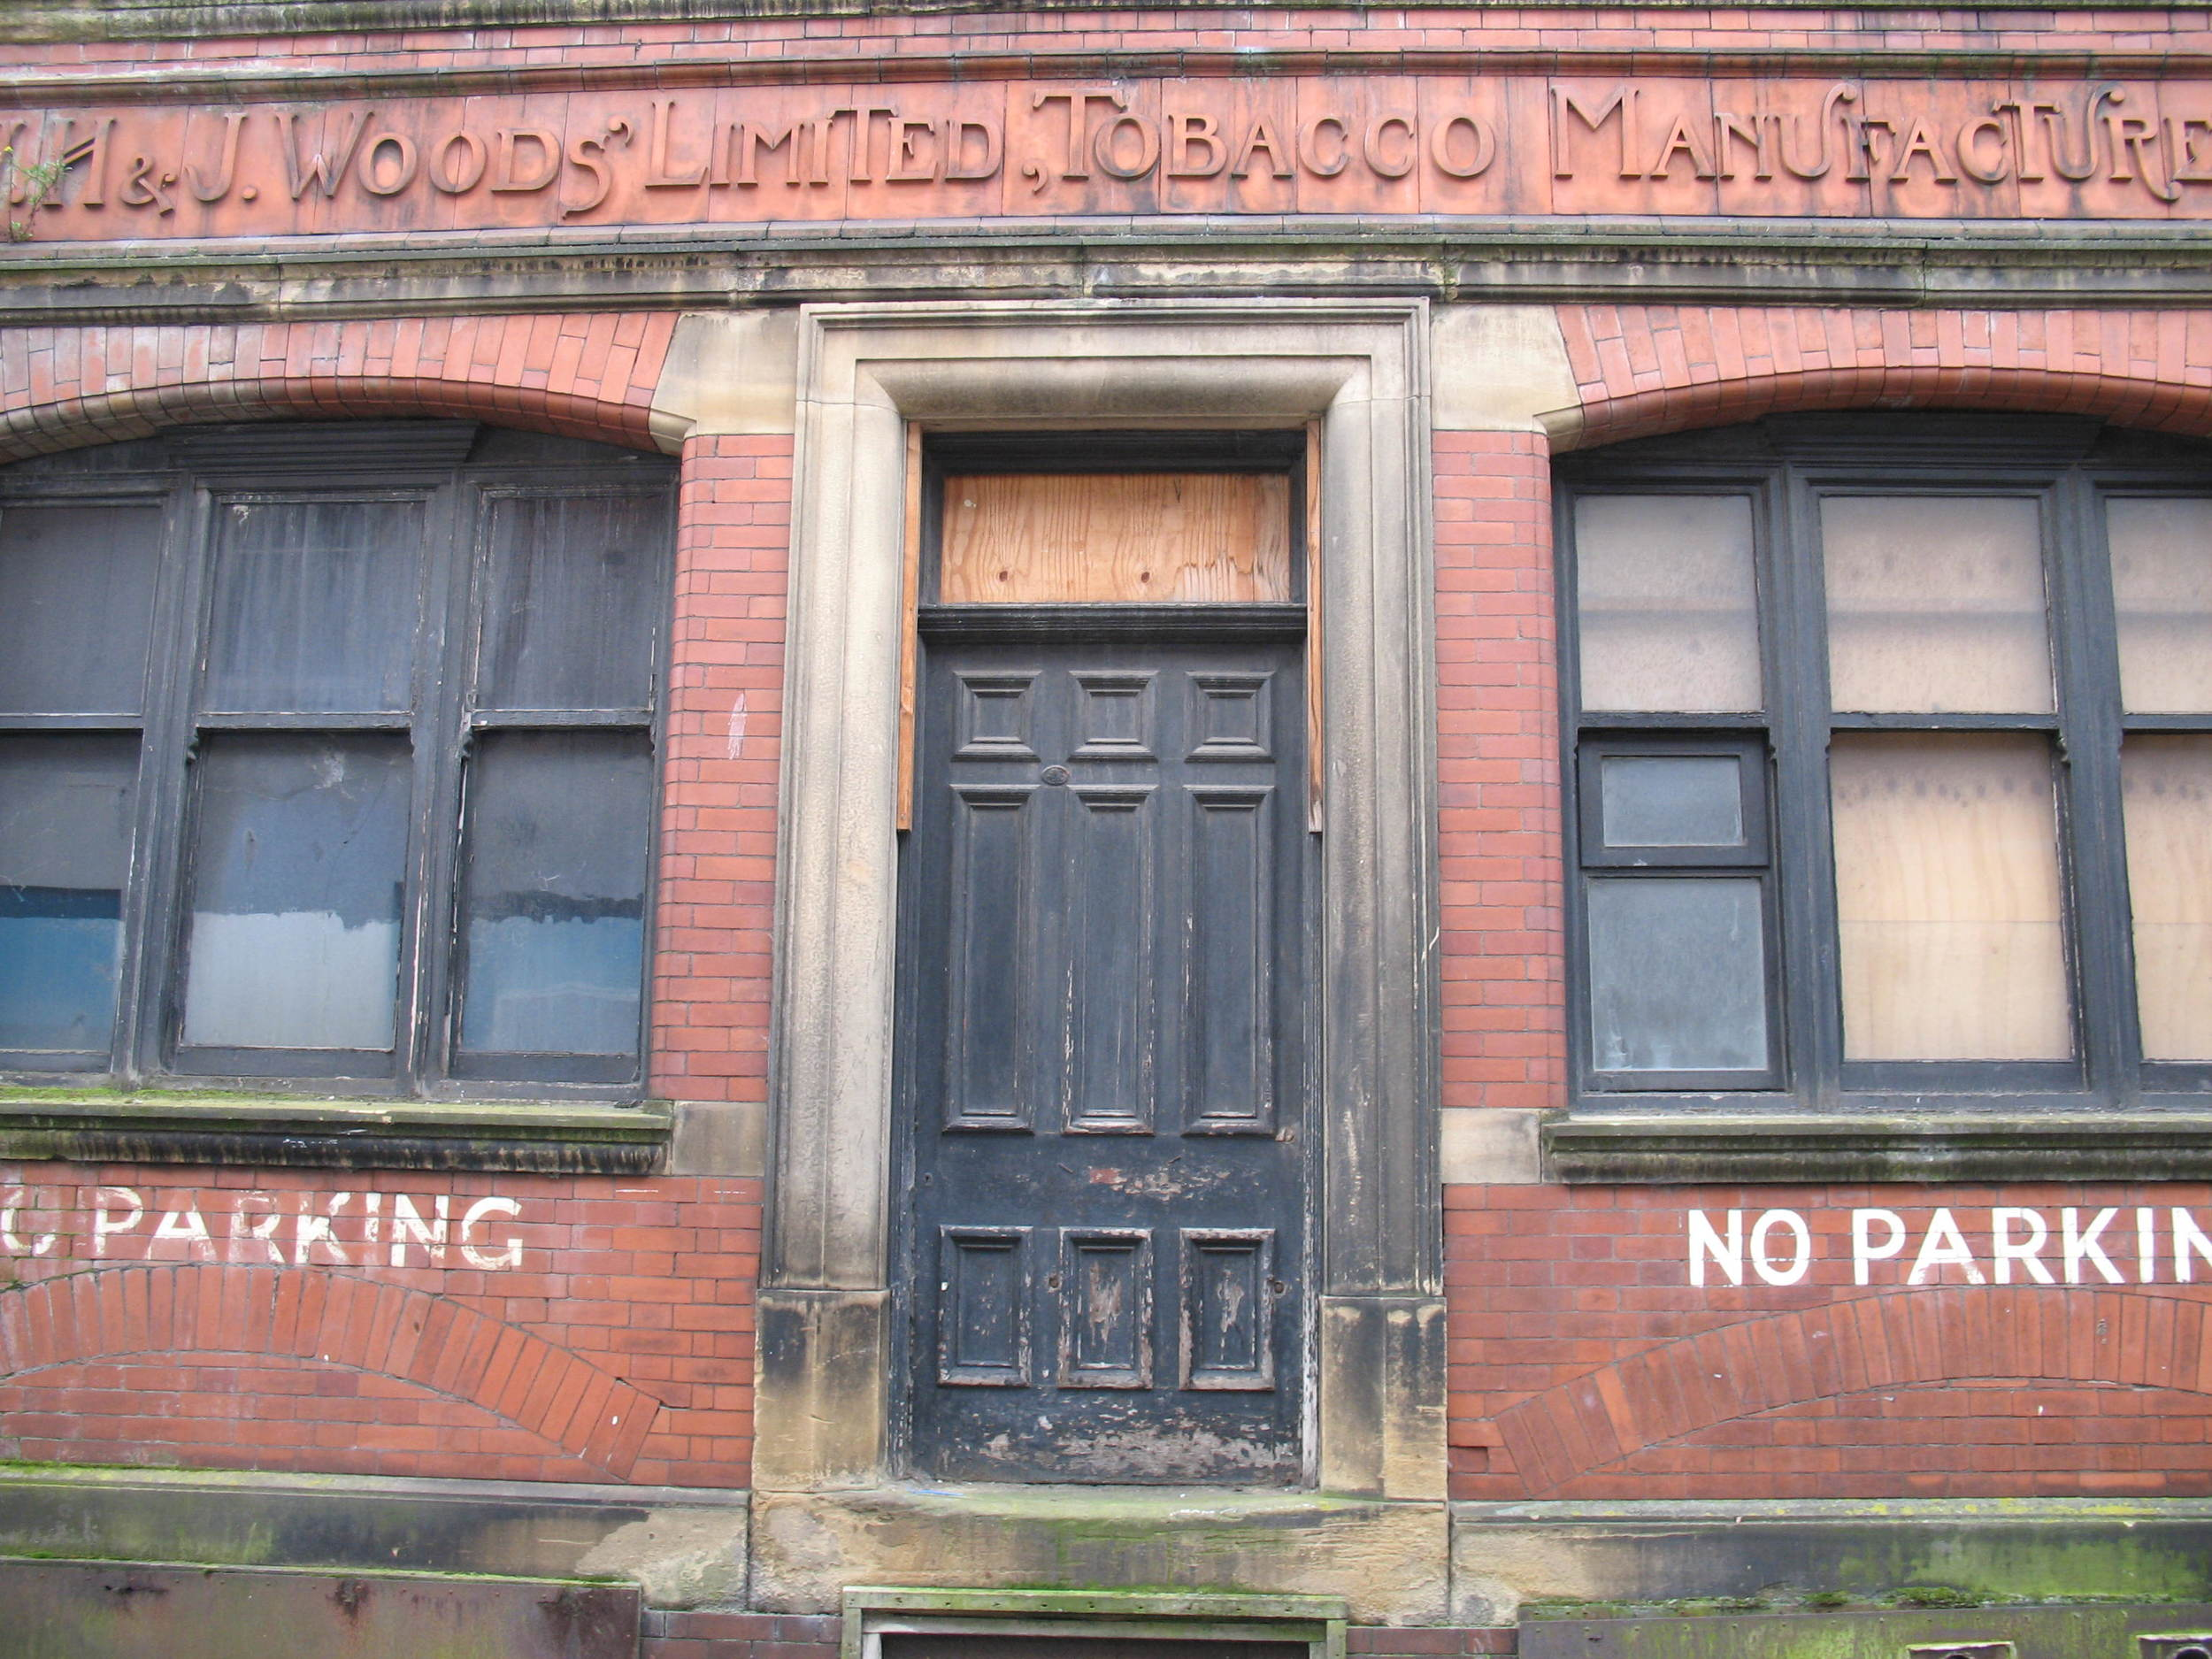 Admittedly this isn't in Paris, it's on Avenham Street in Preston, but writing about the permanence of signs reminded me of this image. I took it as part of the research for my MA project and thought what a shame it is that the building now stands empty, on the verge of dereliction. Someone must have taken great pride in it a long time ago, to have the company name carved into the brickwork.